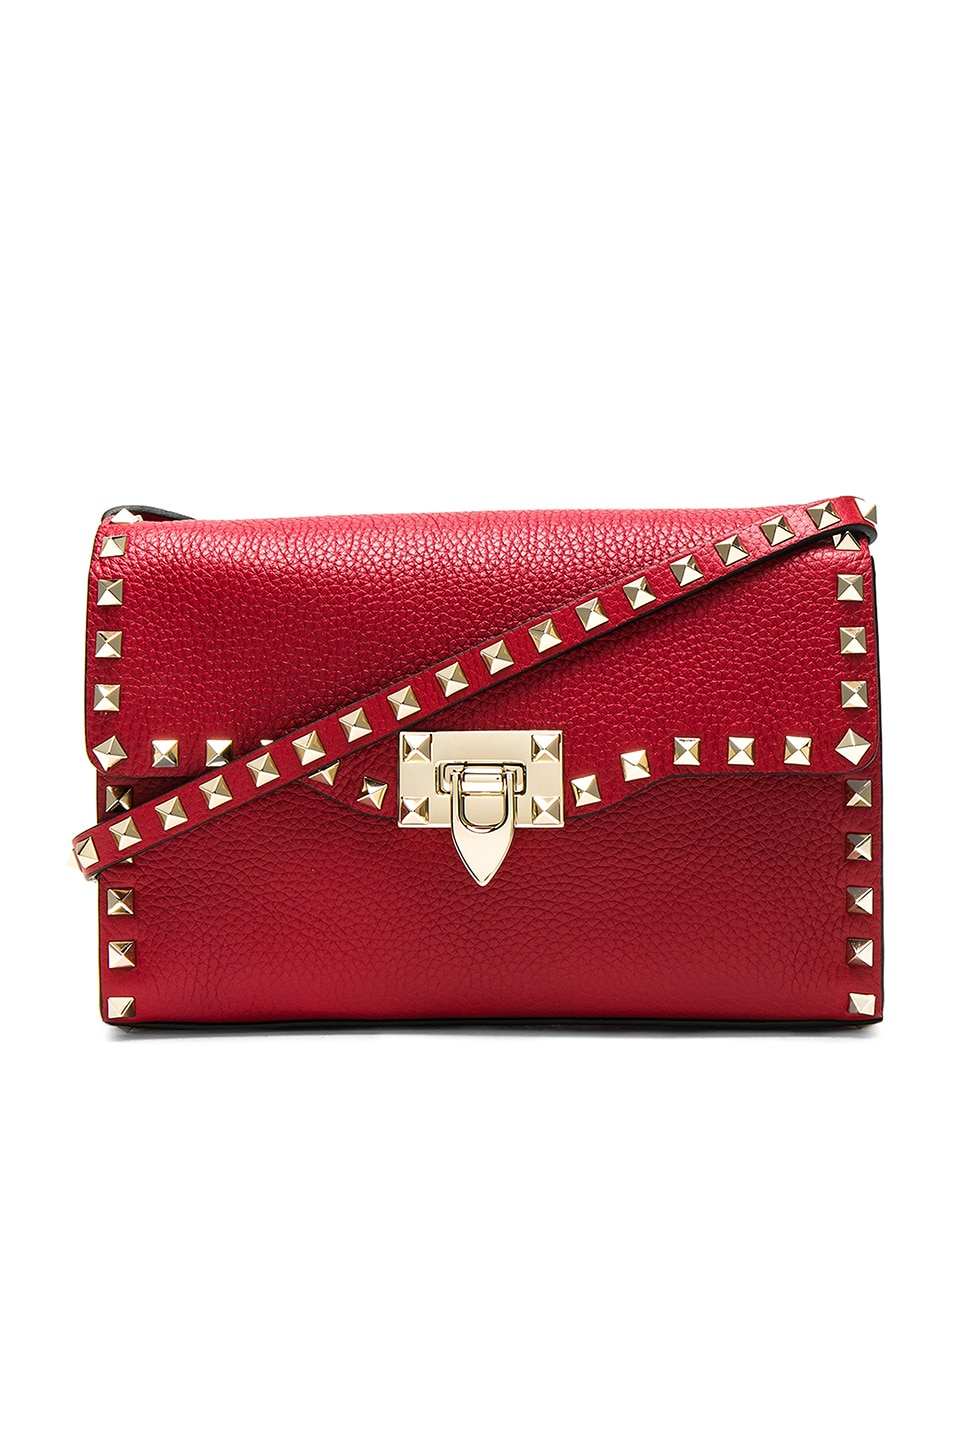 Image 1 of Valentino Medium Rockstud Shoulder Bag in Red